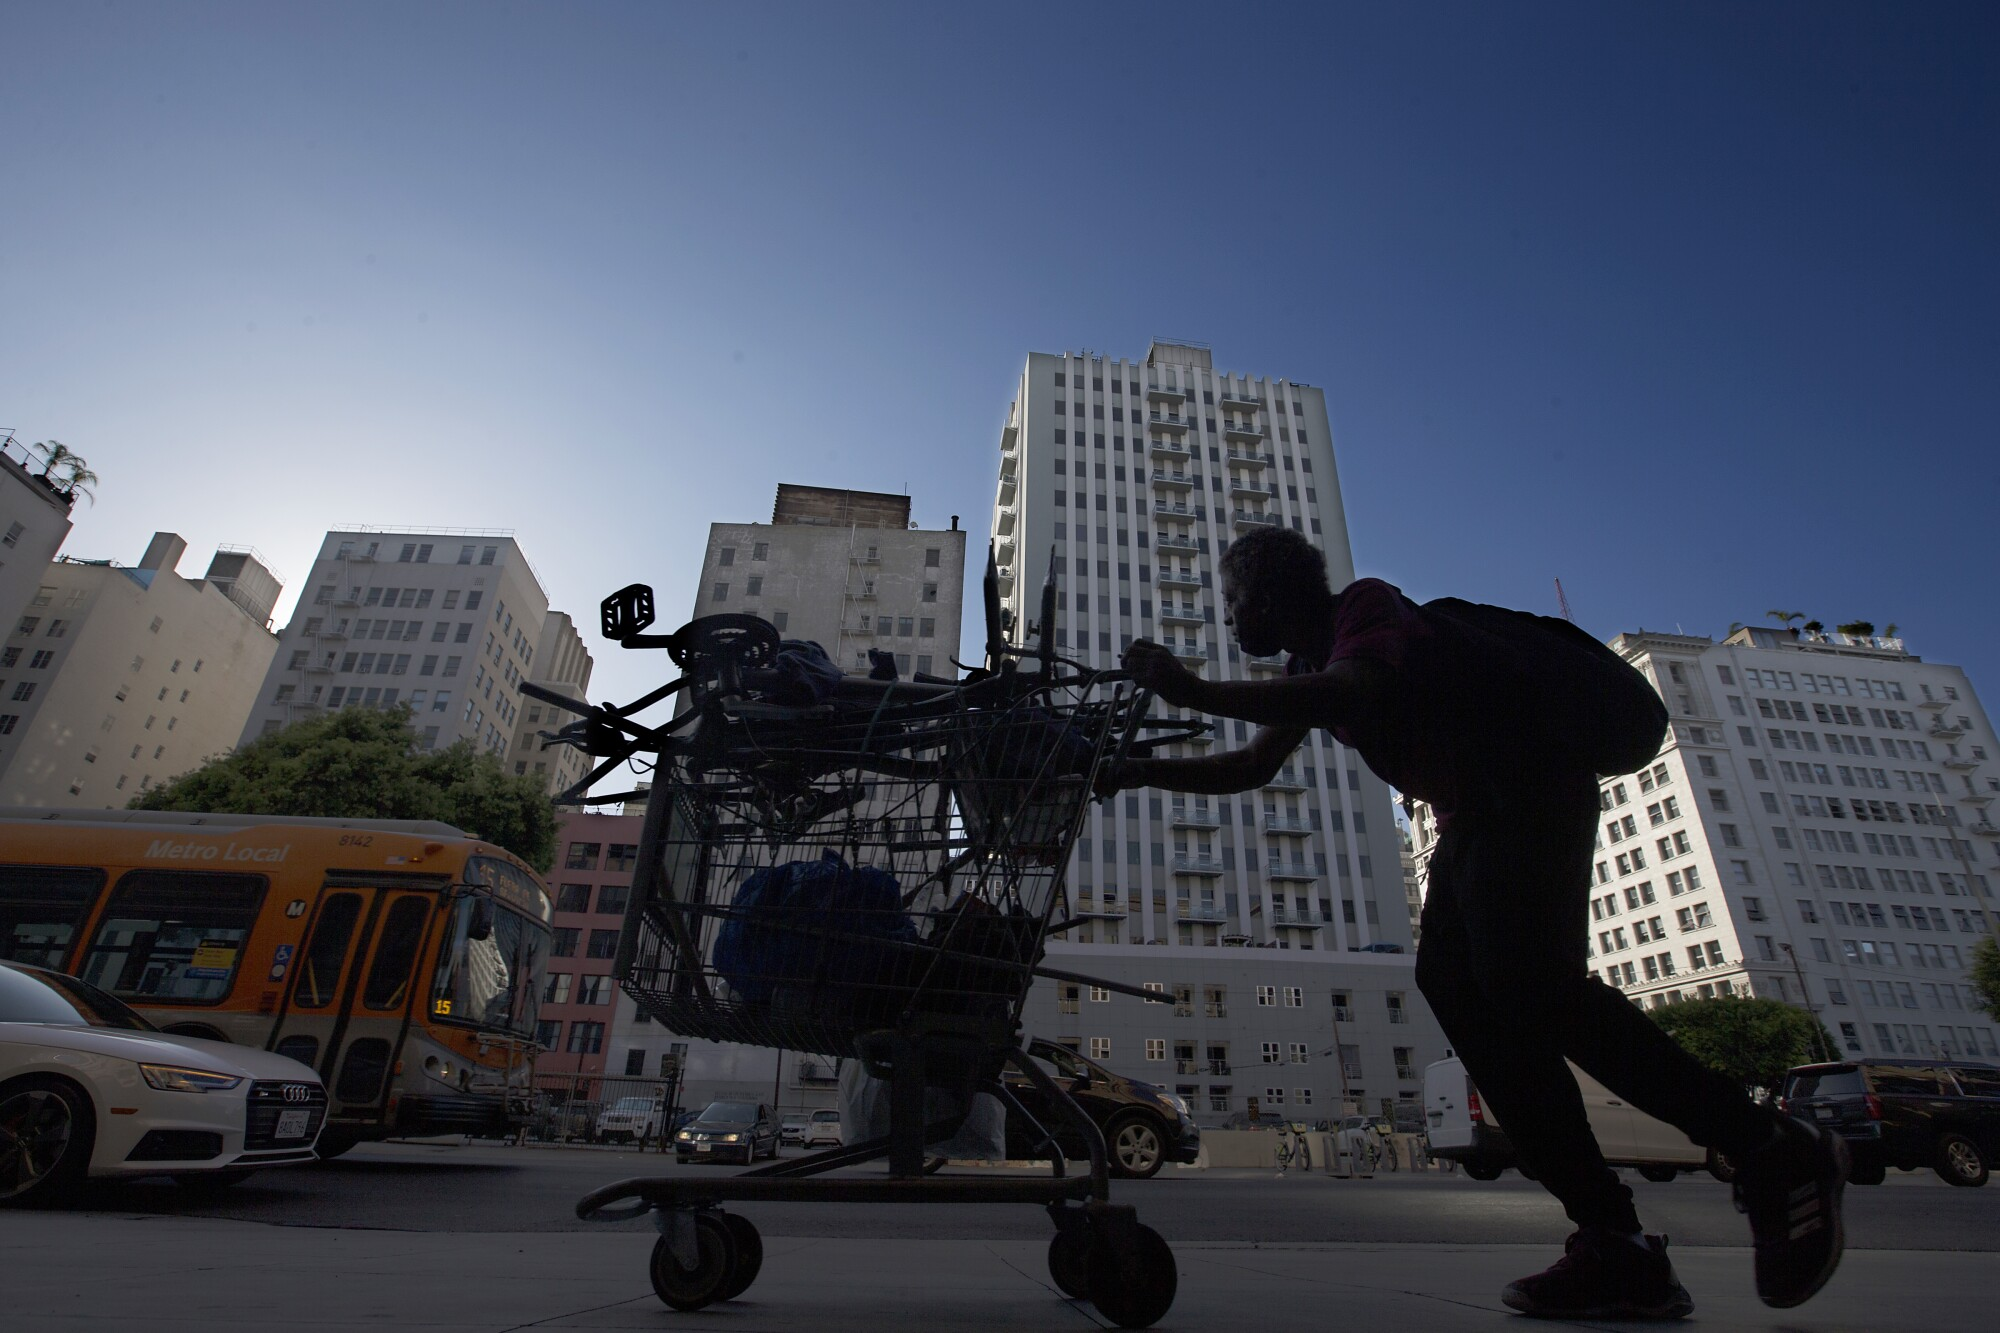 A man pushes a shopping cart along the sidewalk in the historic urban core of Los Angeles.